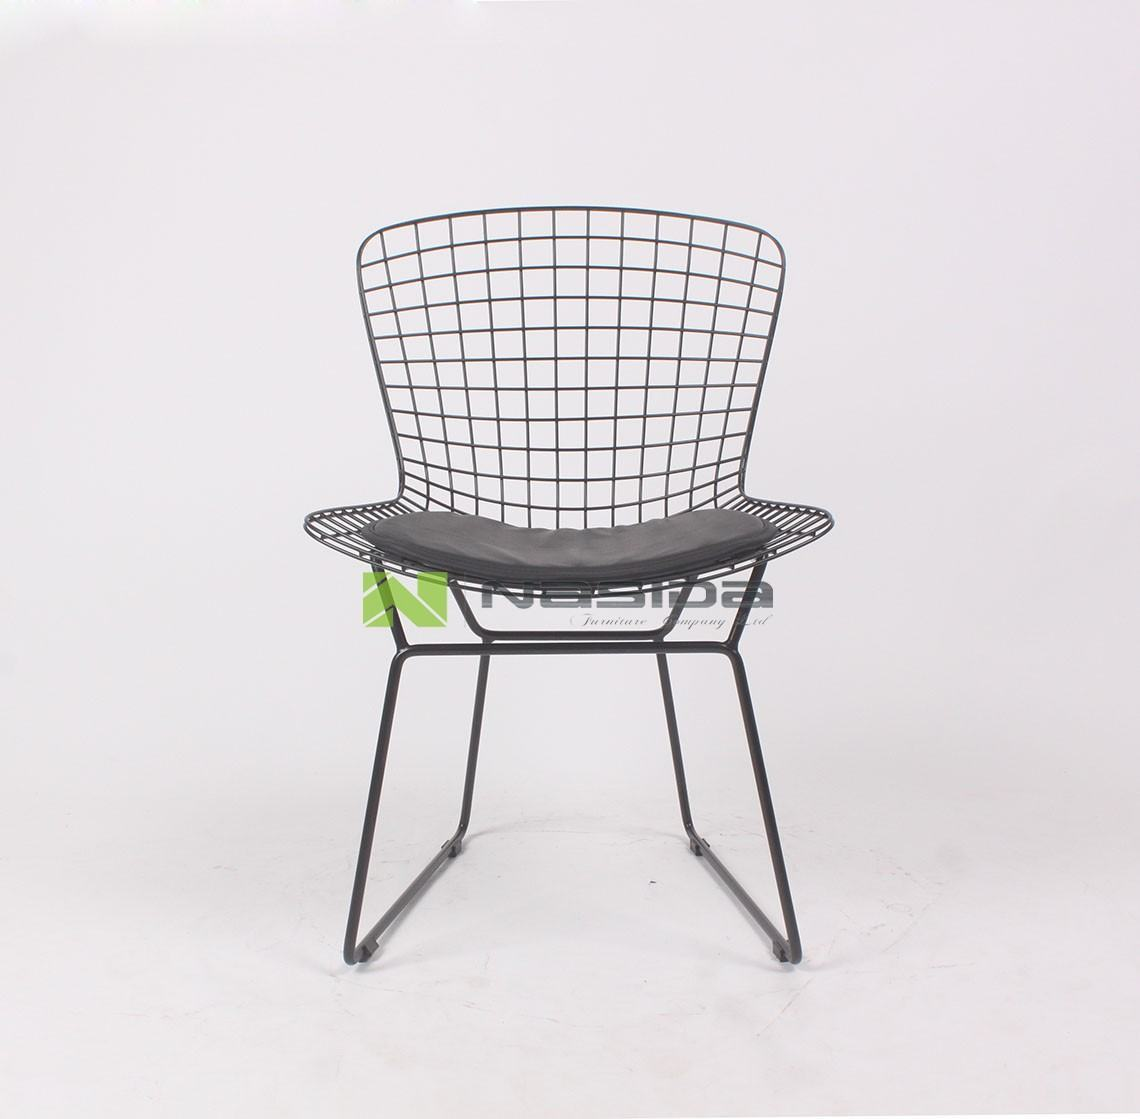 bertoia chair bertoia chair suppliers and manufacturers at alibaba com